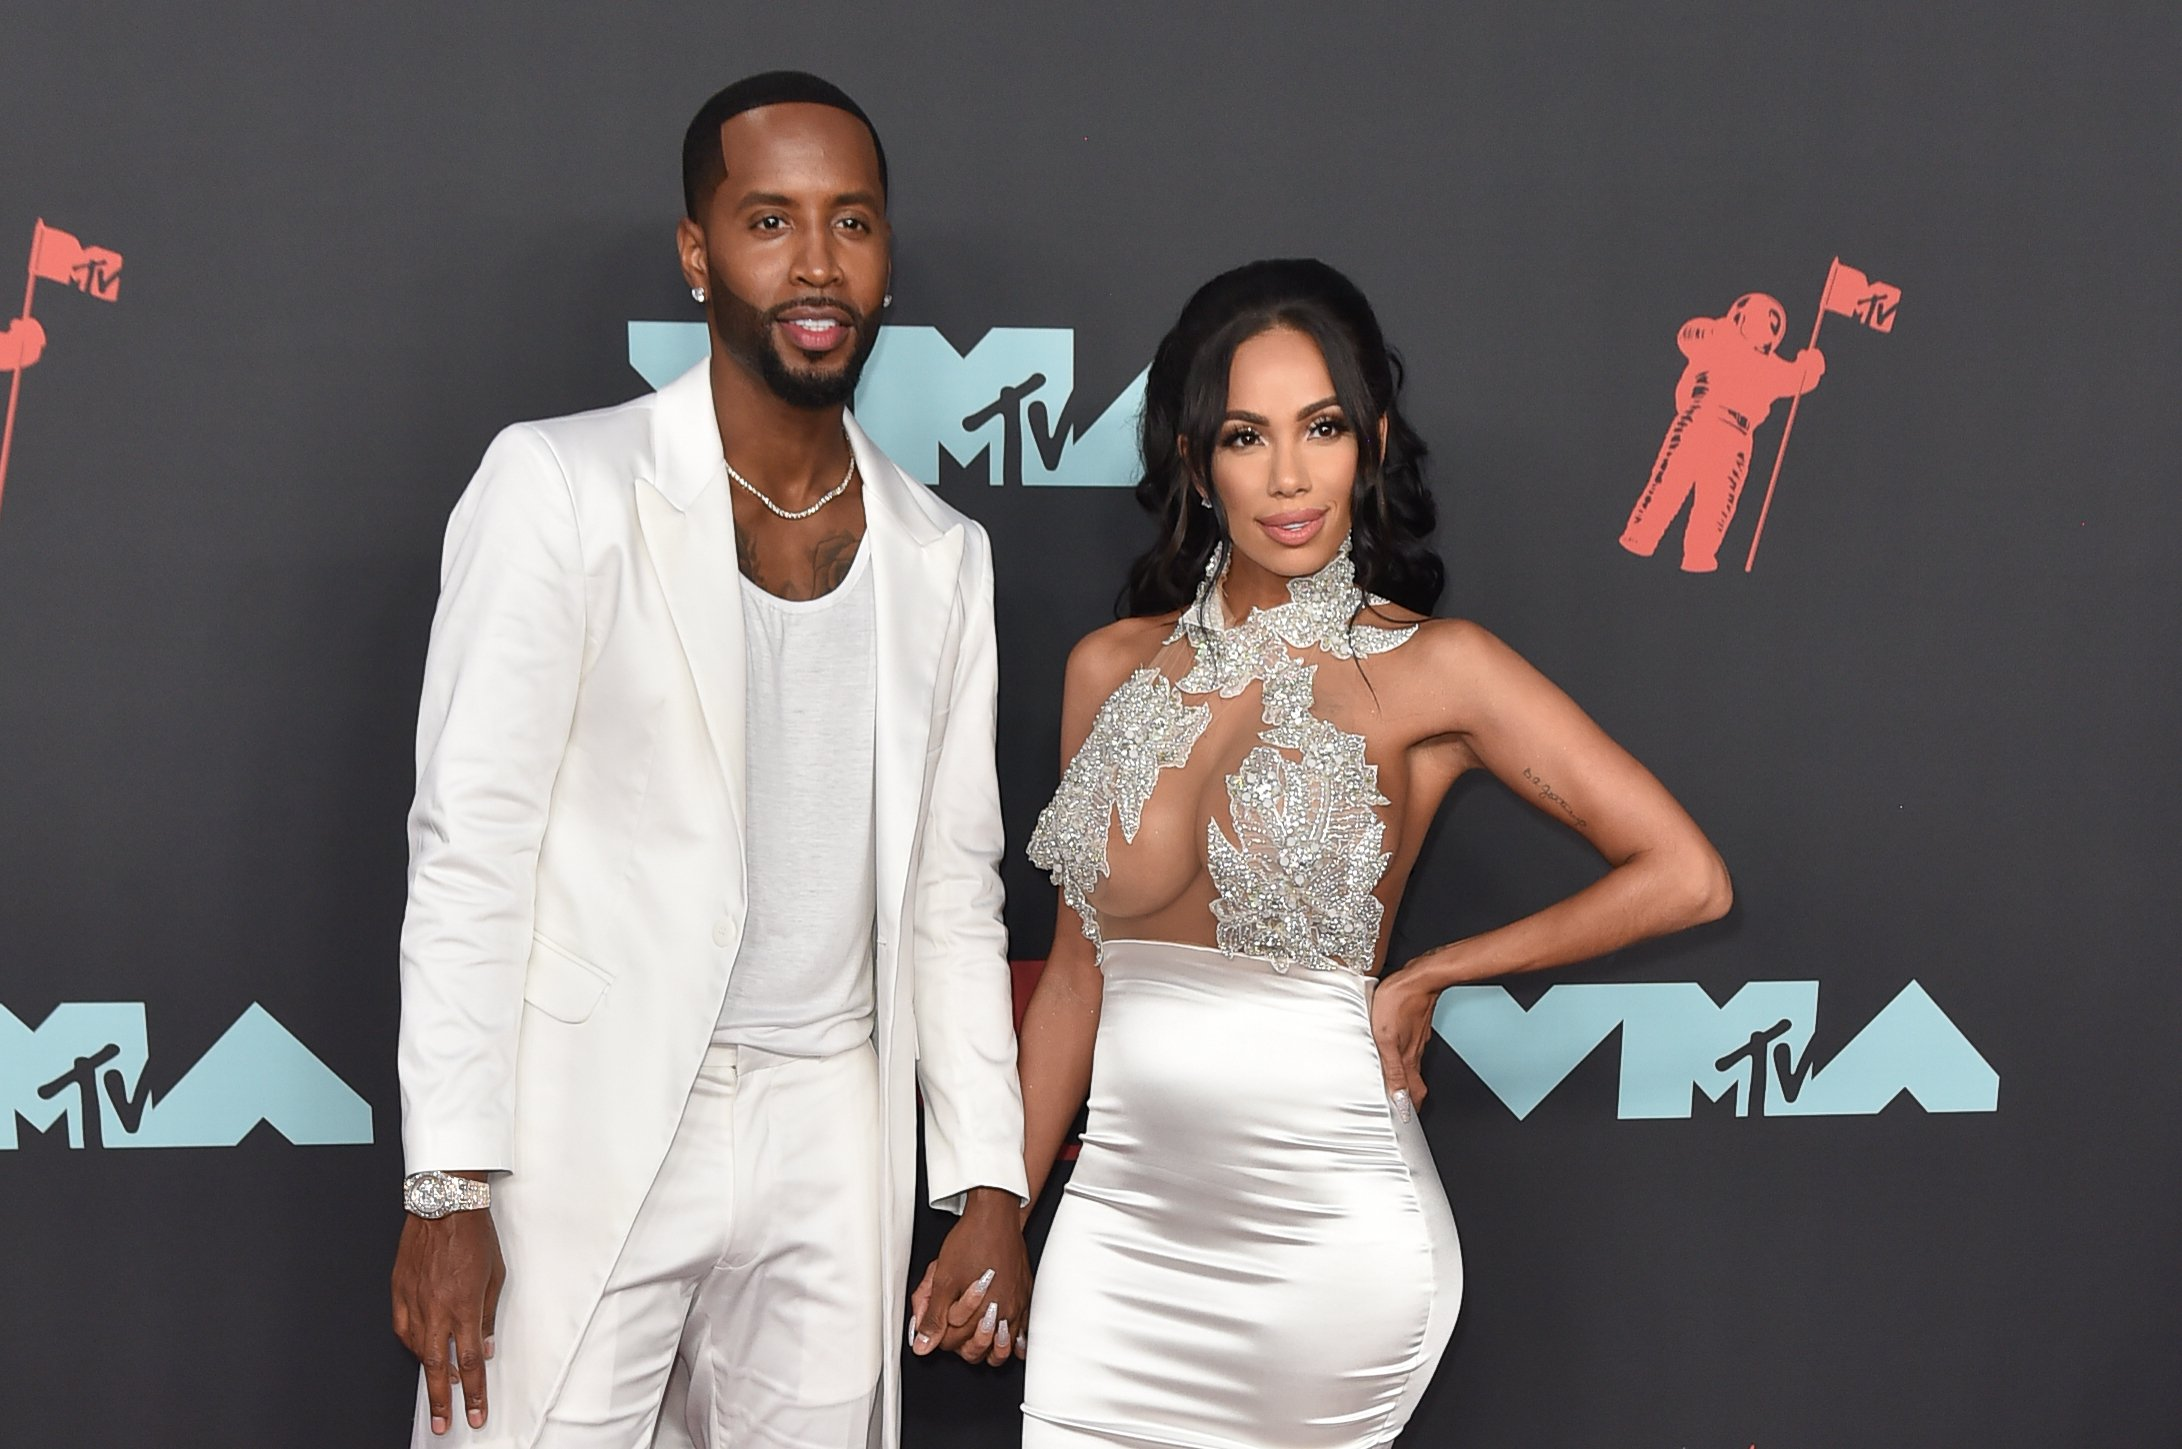 Safaree Samuels and Erica Mena Samuels at the 2019 MTV Video Music Awards in New Jersey | Source: Getty Images